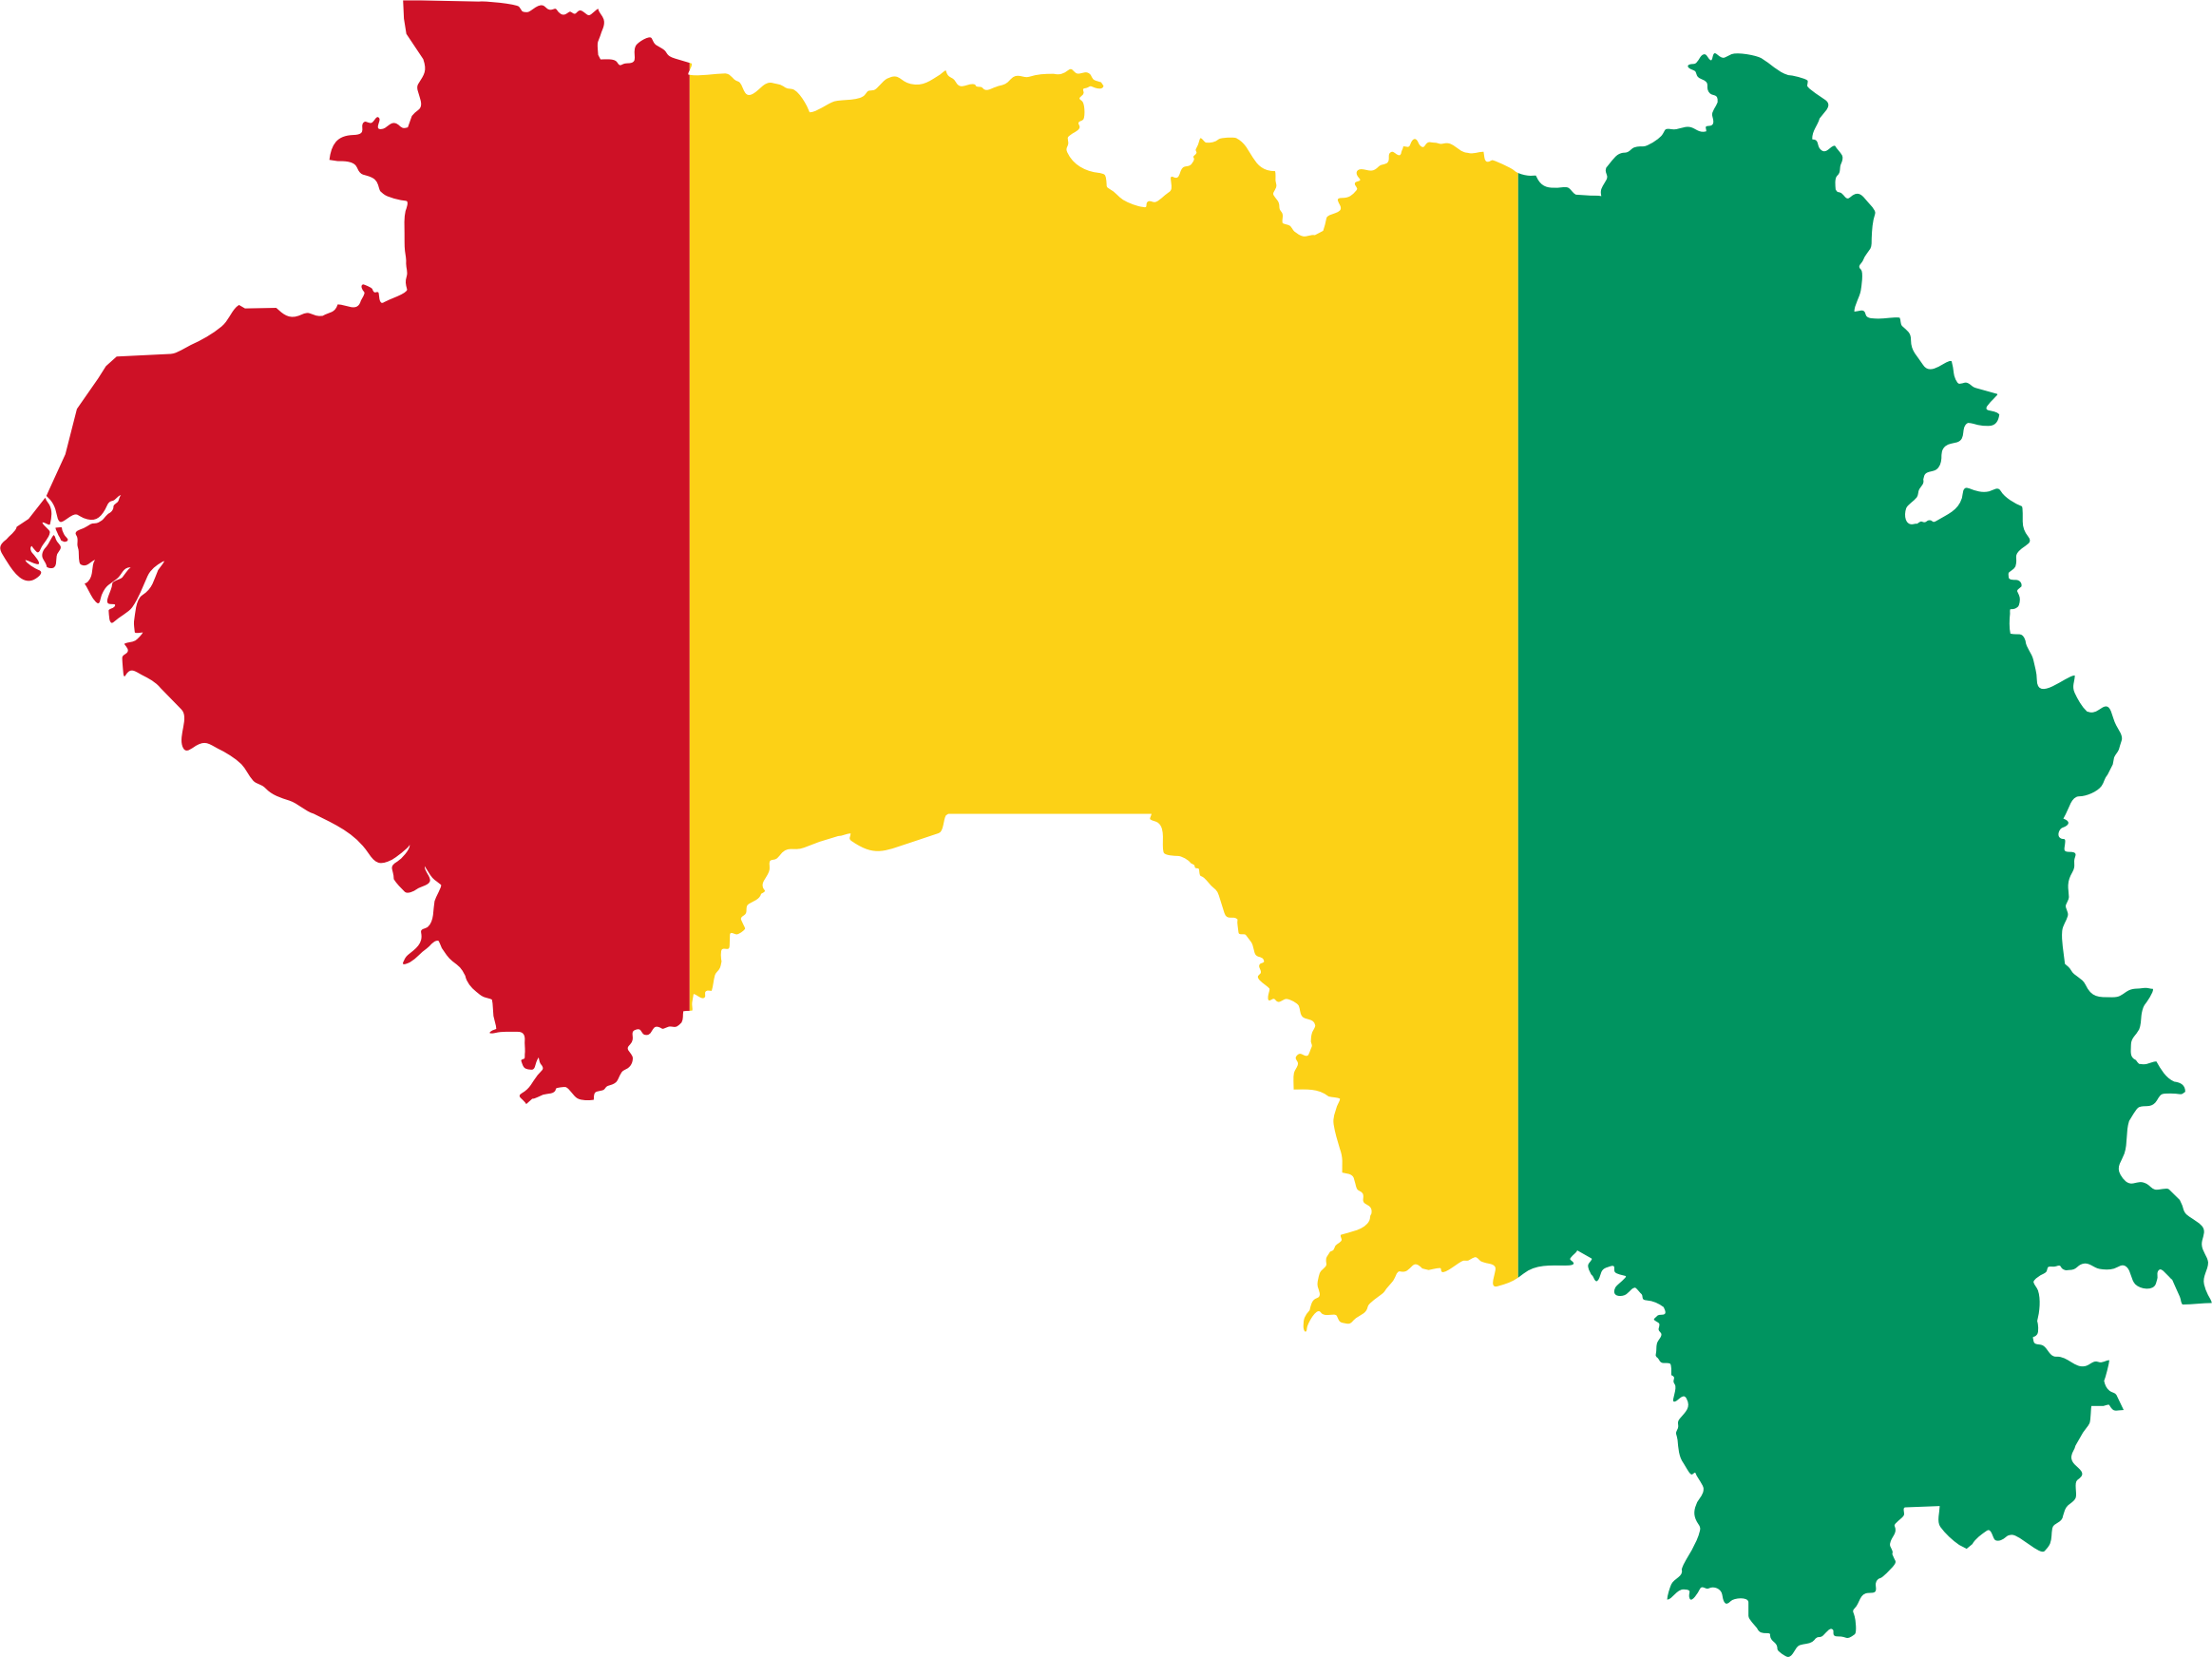 File:Flag of Guinea.svg Wikimedia Commons